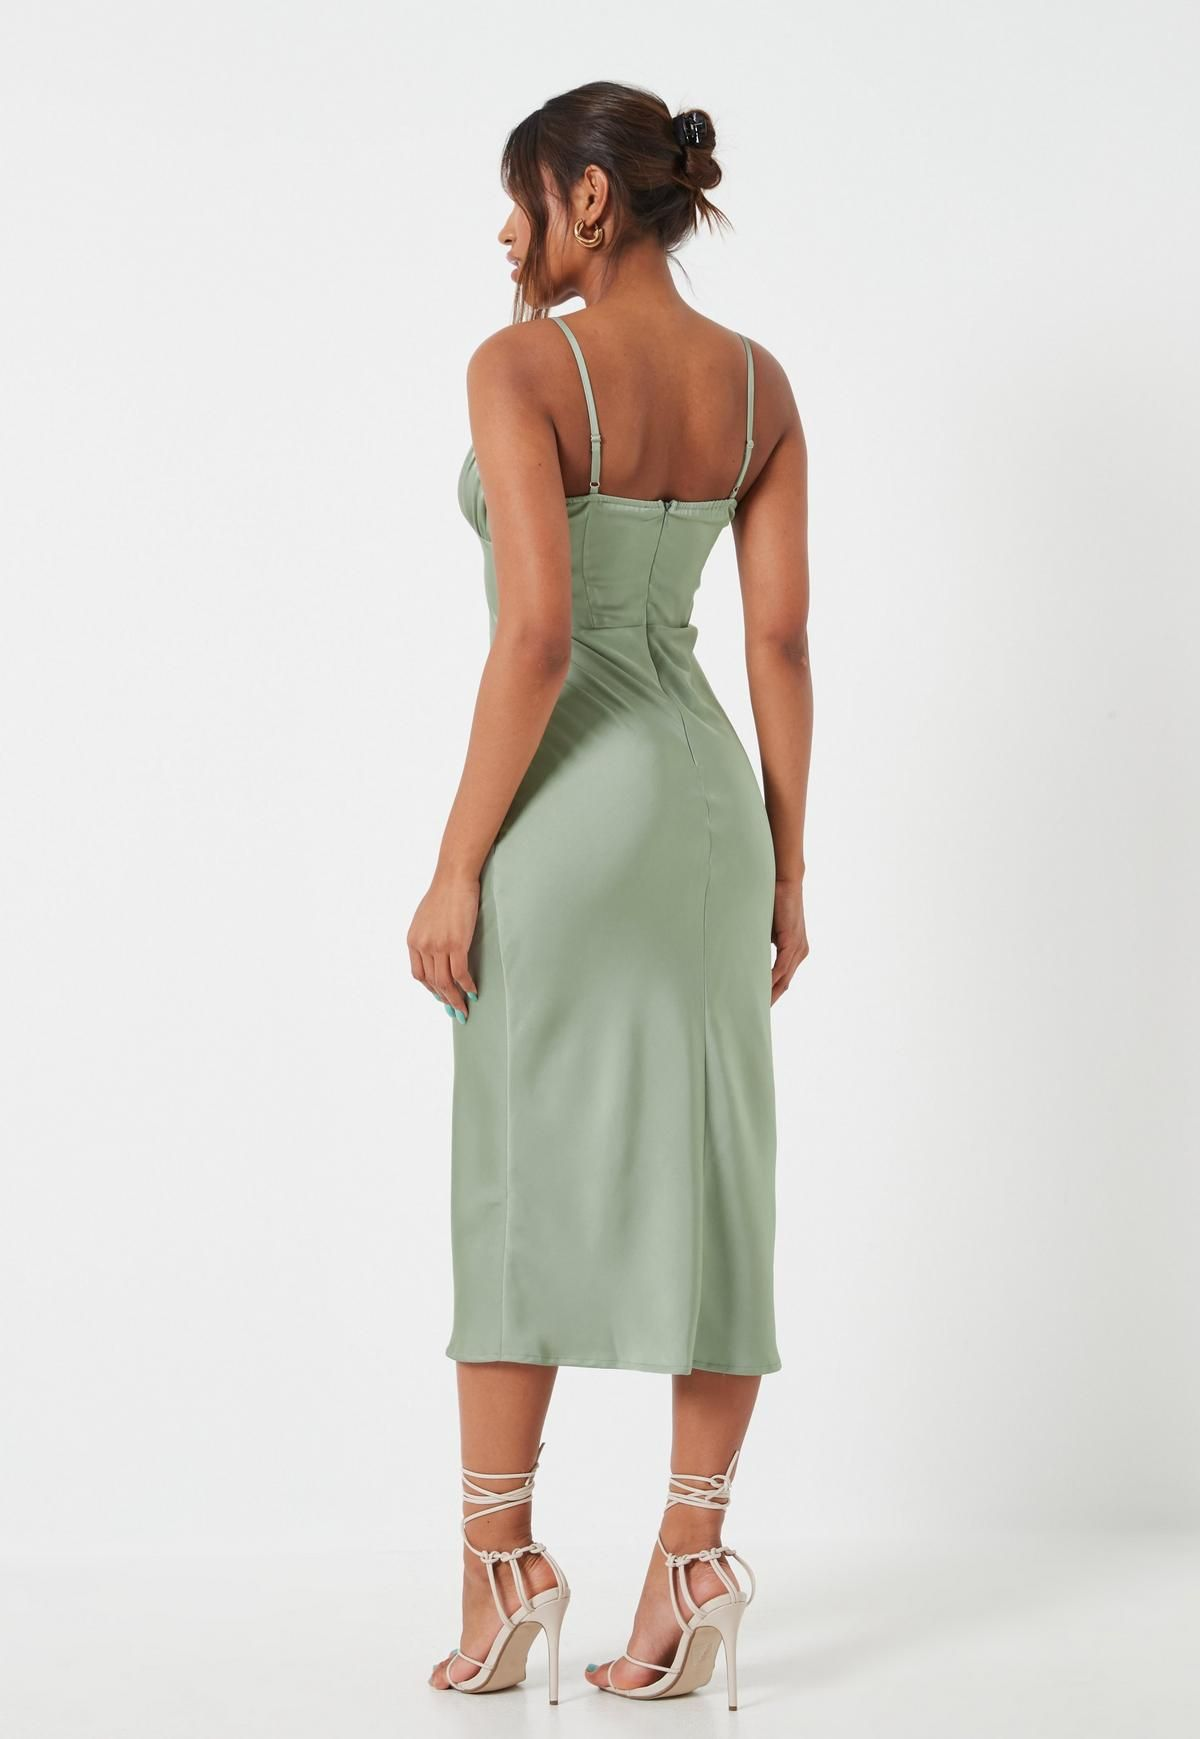 Sage Ruched Bust Strappy Midi Dress Missguided Dressy Outfits Dresses Midi Dress [ 1739 x 1200 Pixel ]